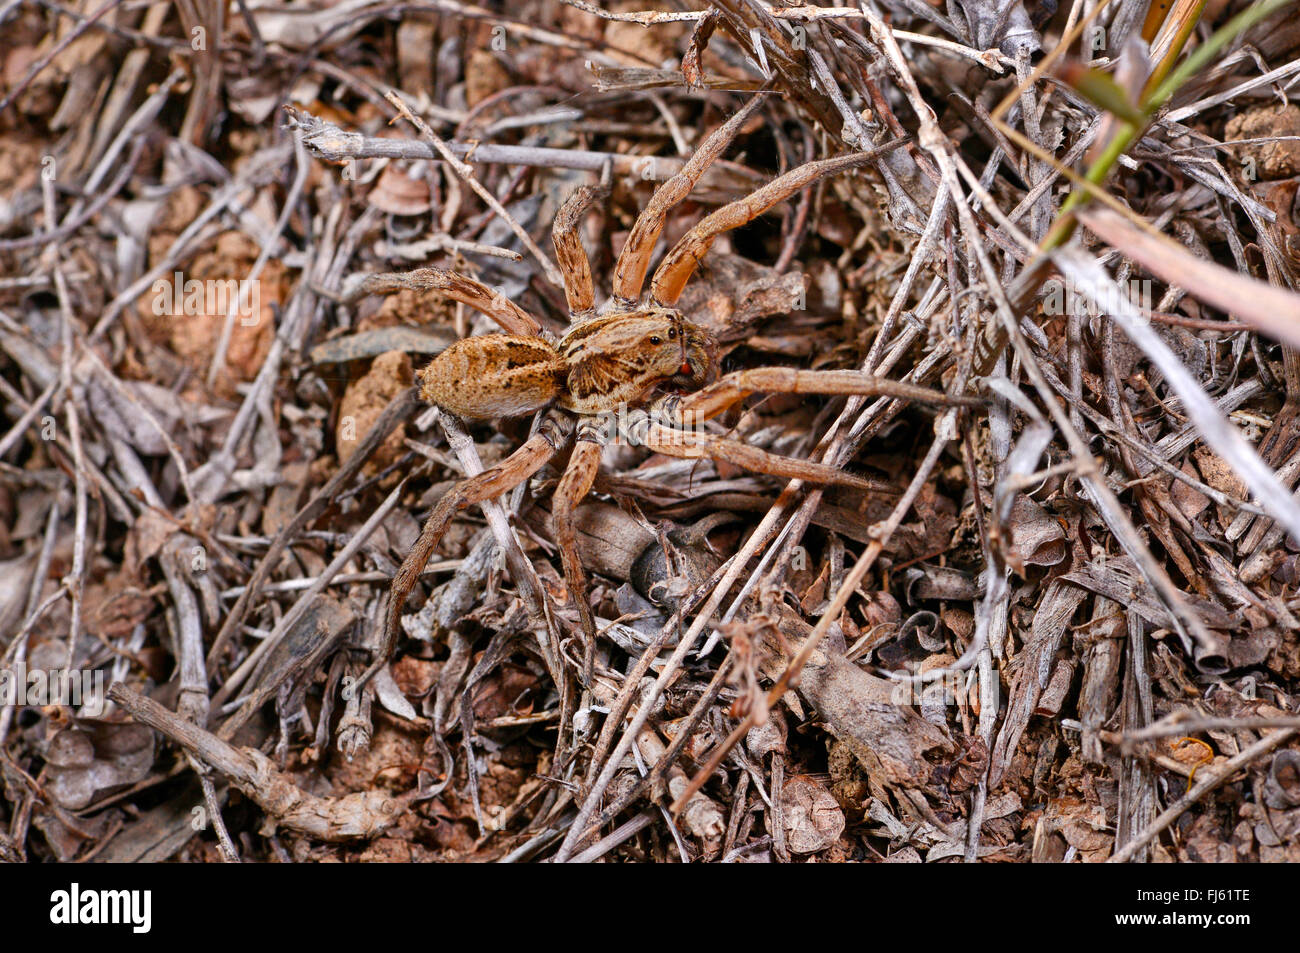 wolf spiders, ground spiders (Lycosidae), on the ground, Madagascar - Stock Image